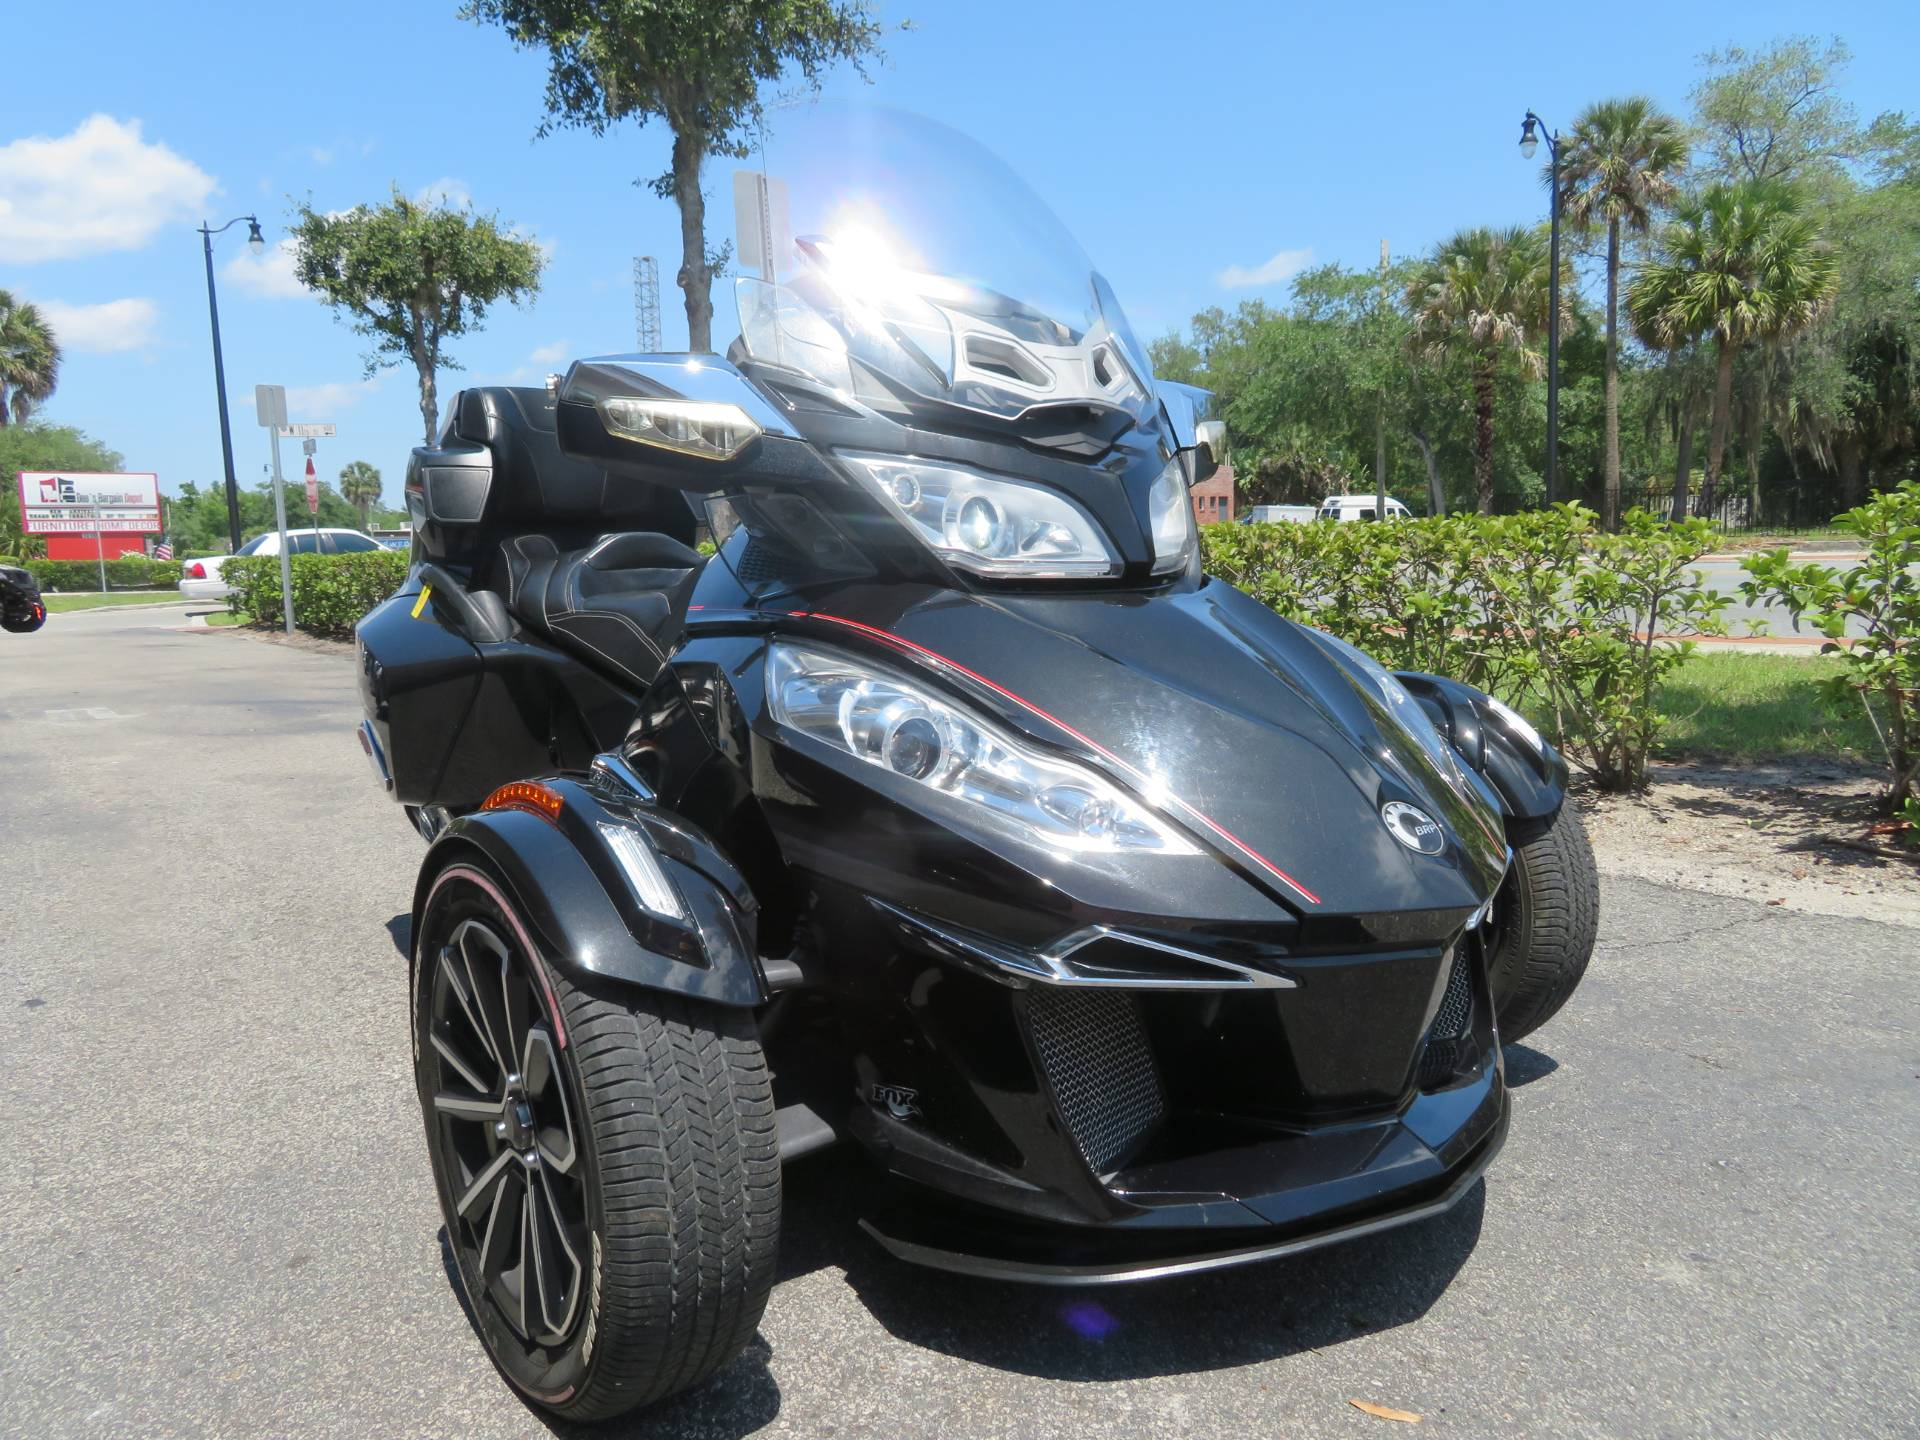 2015 Can-Am Spyder® RT Limited in Sanford, Florida - Photo 3